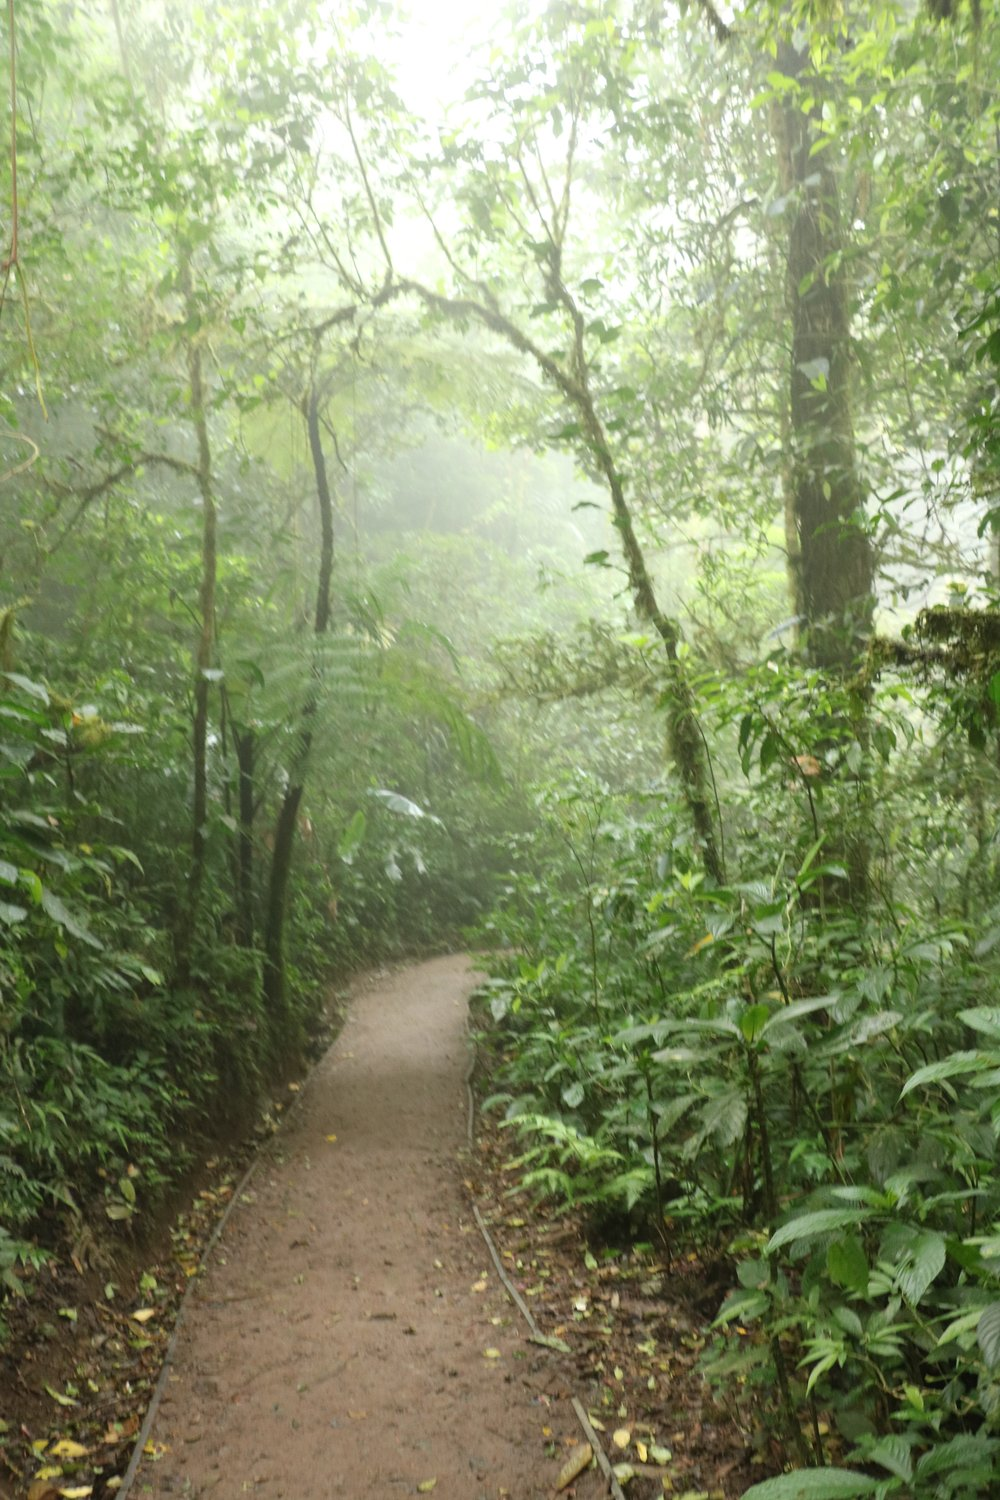 One of the public trails snaking through the Cloud Forest Reserve